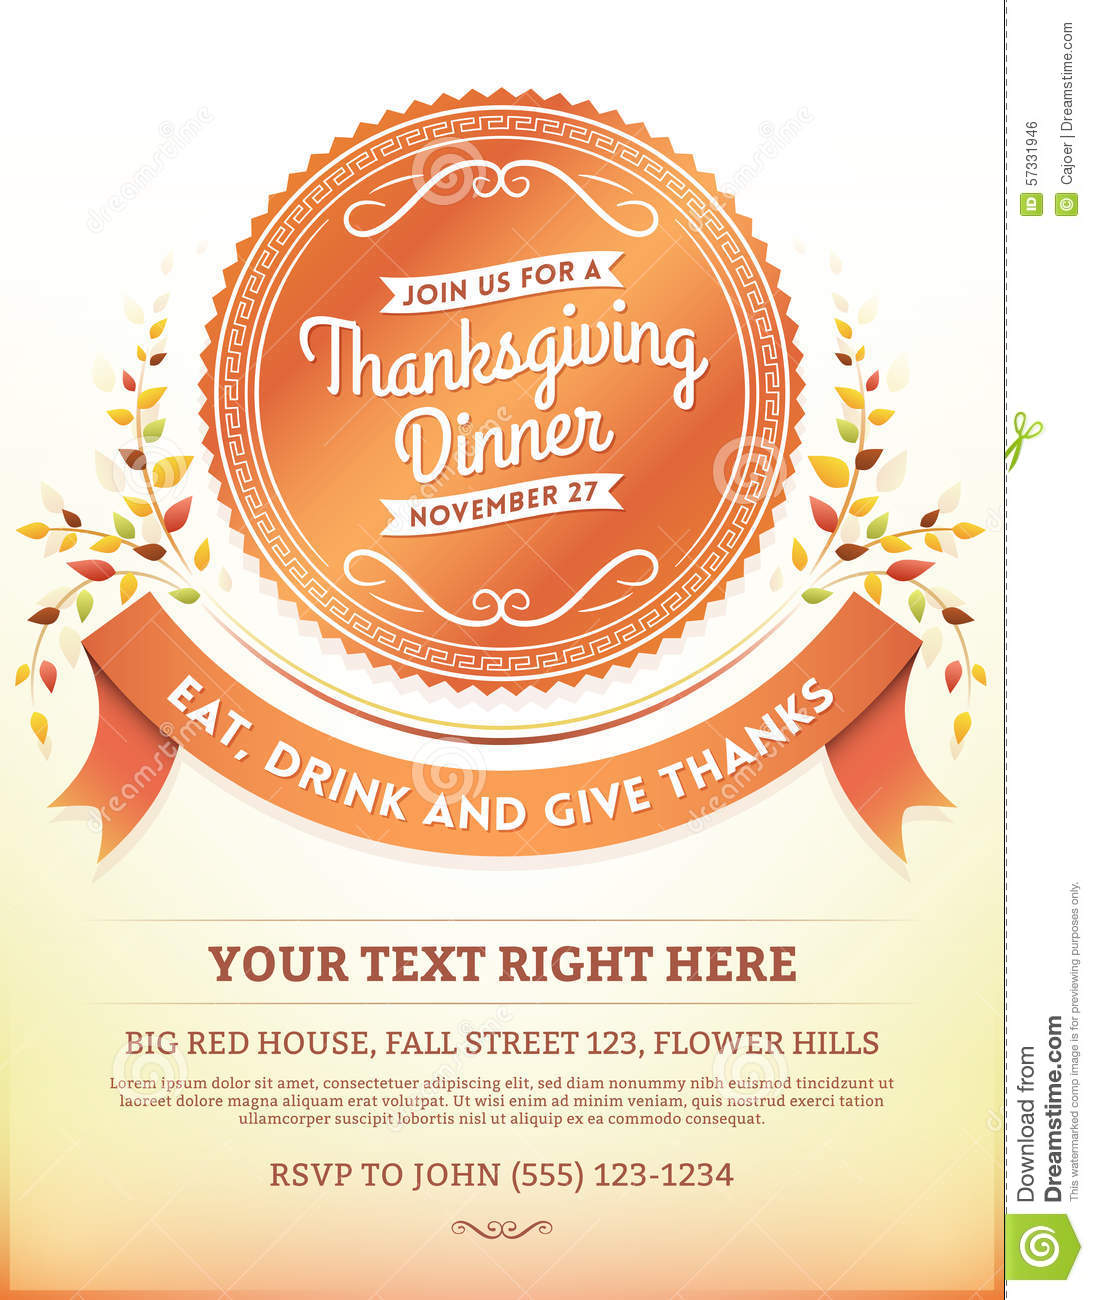 Thanksgiving Dinner Invitation as amazing invitation ideas